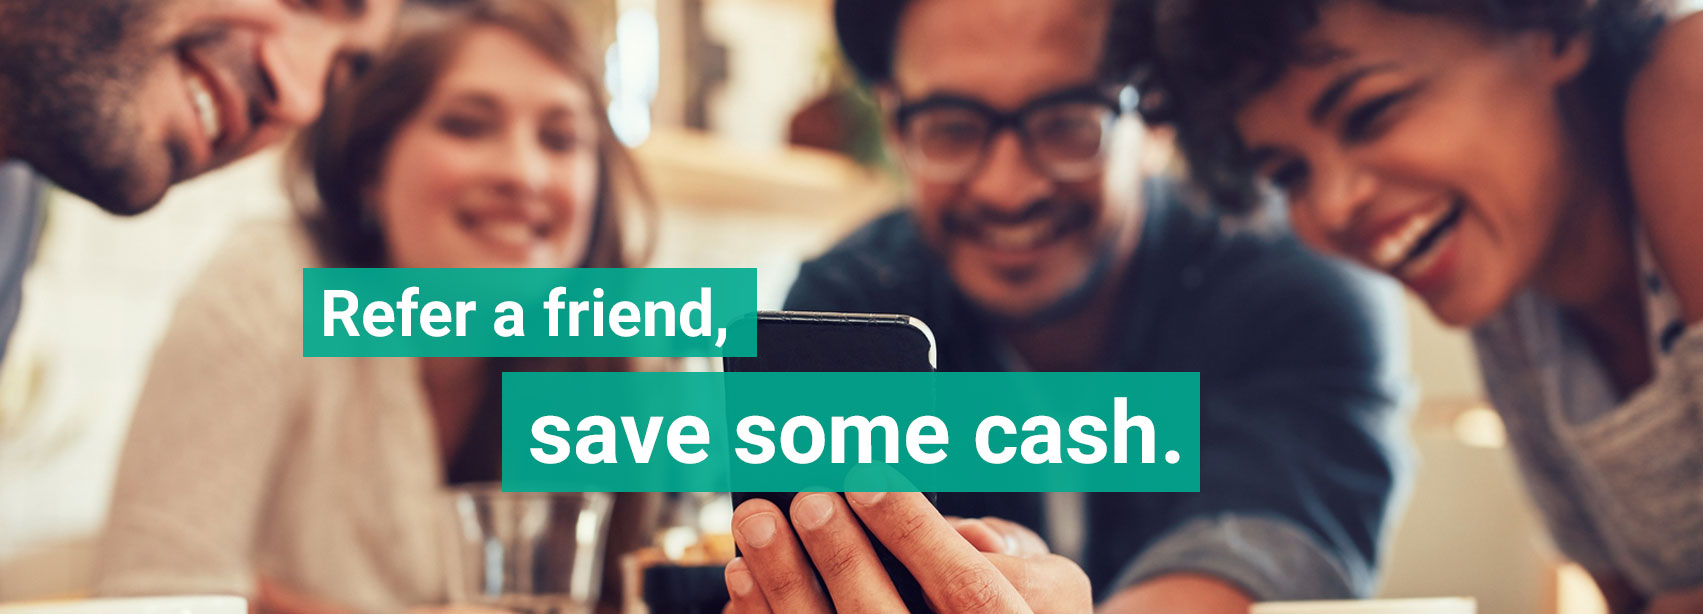 Refer a friend and save some cash